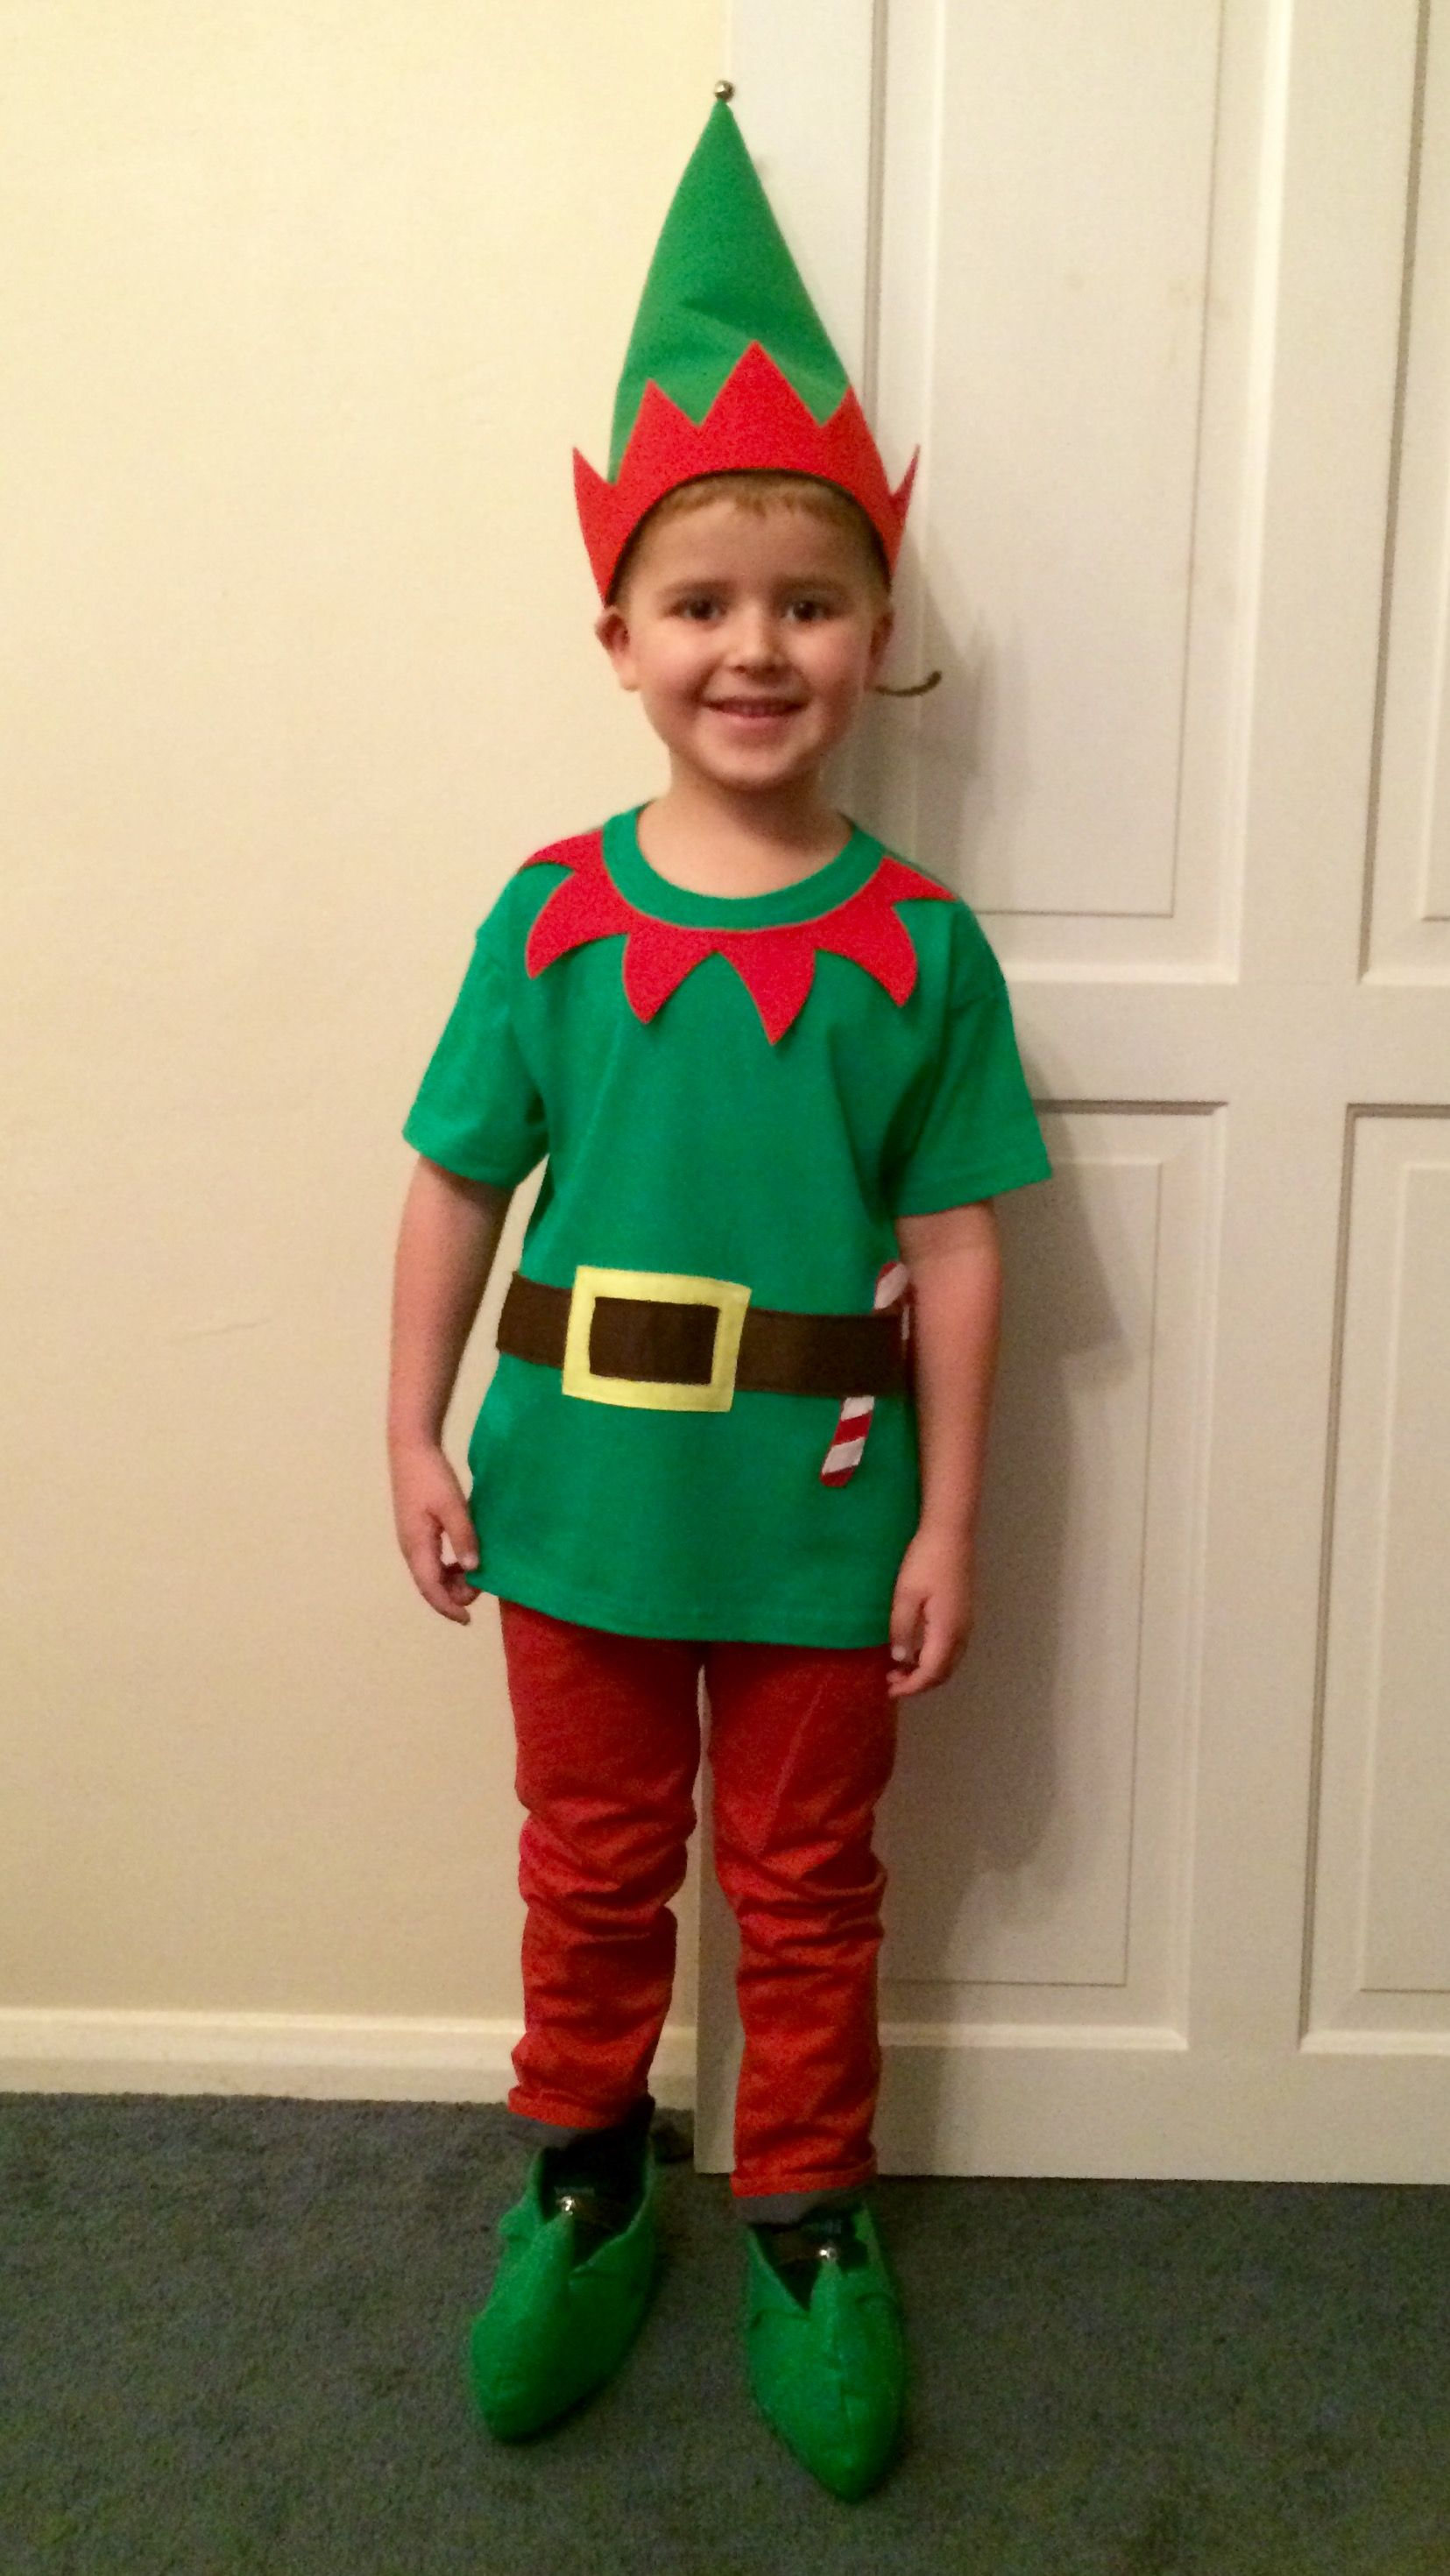 Elf costume Christmas DIY Christmas elf costume diy